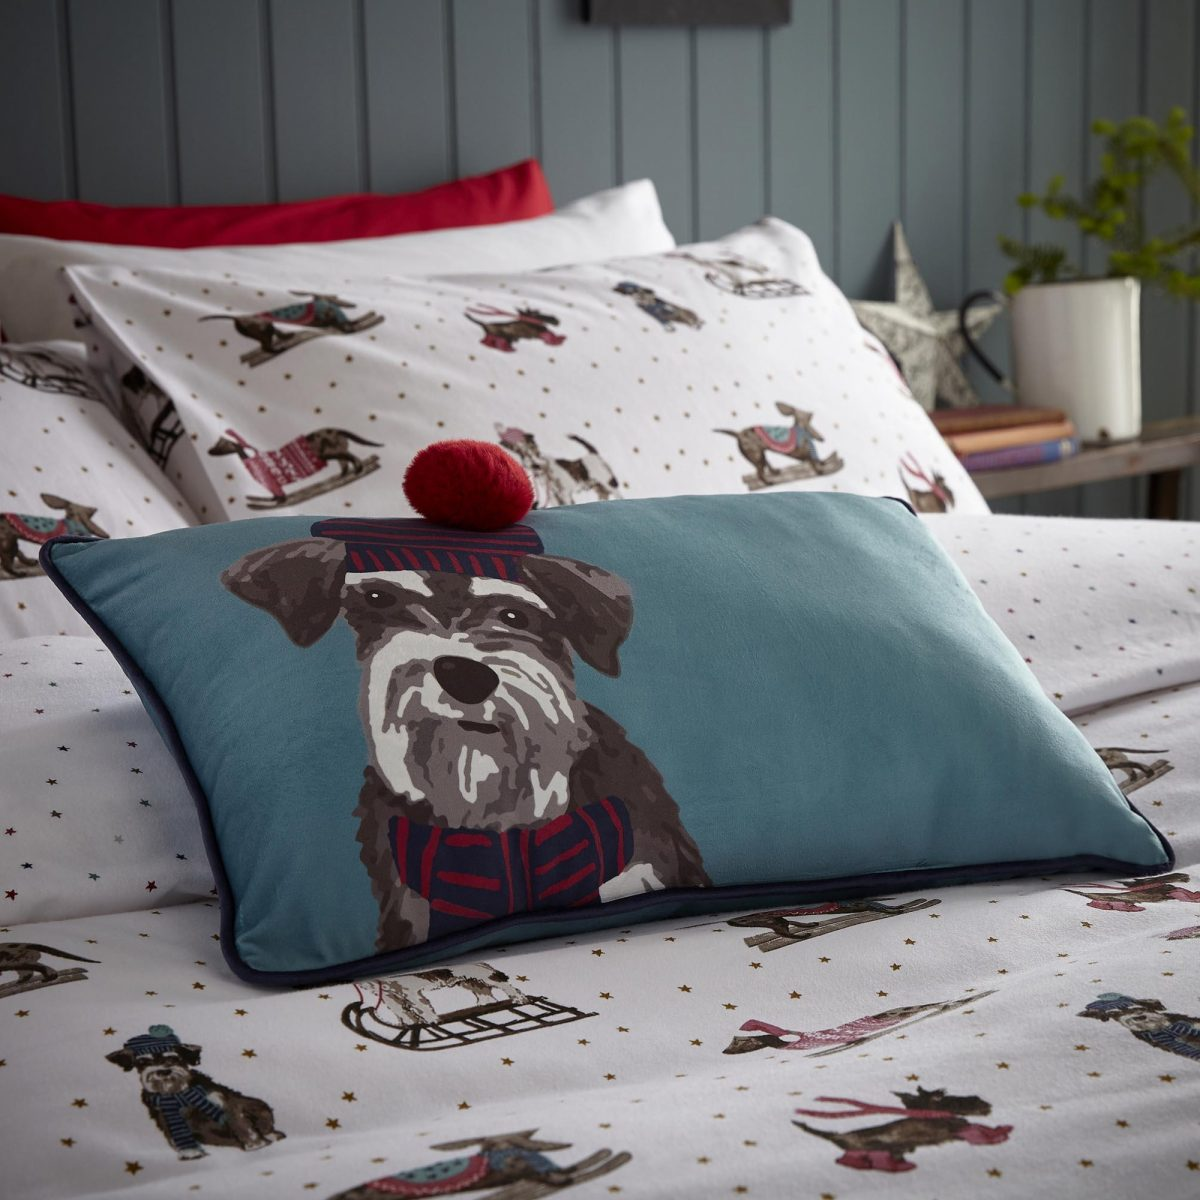 Sledging Dogs Cushion Cameo For Email